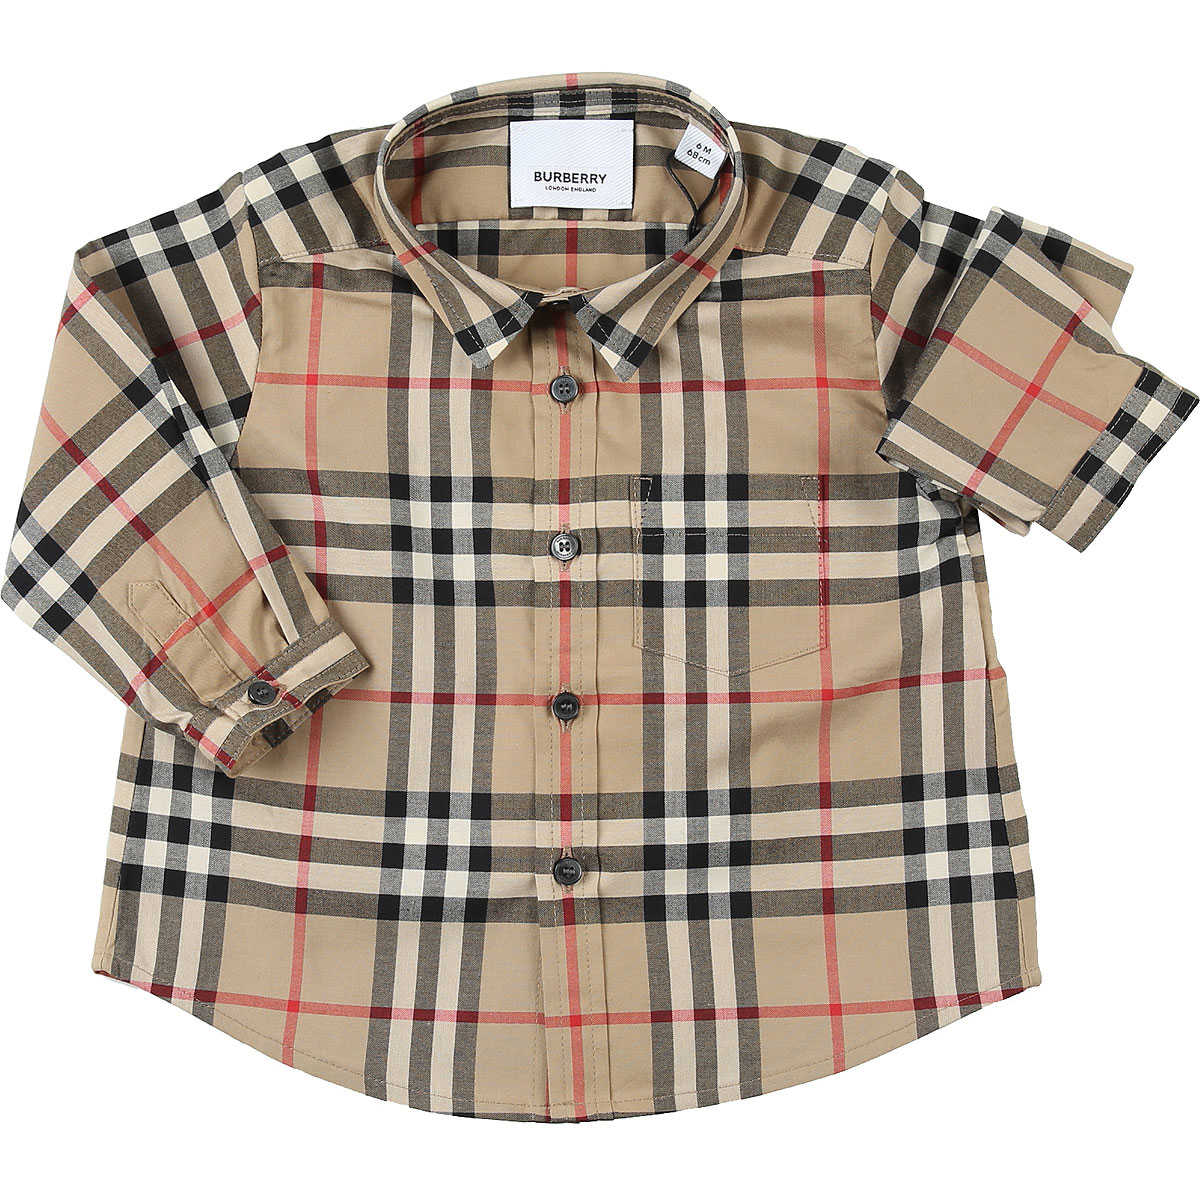 Burberry Baby Shirts for Boys Dark Beige USA - GOOFASH